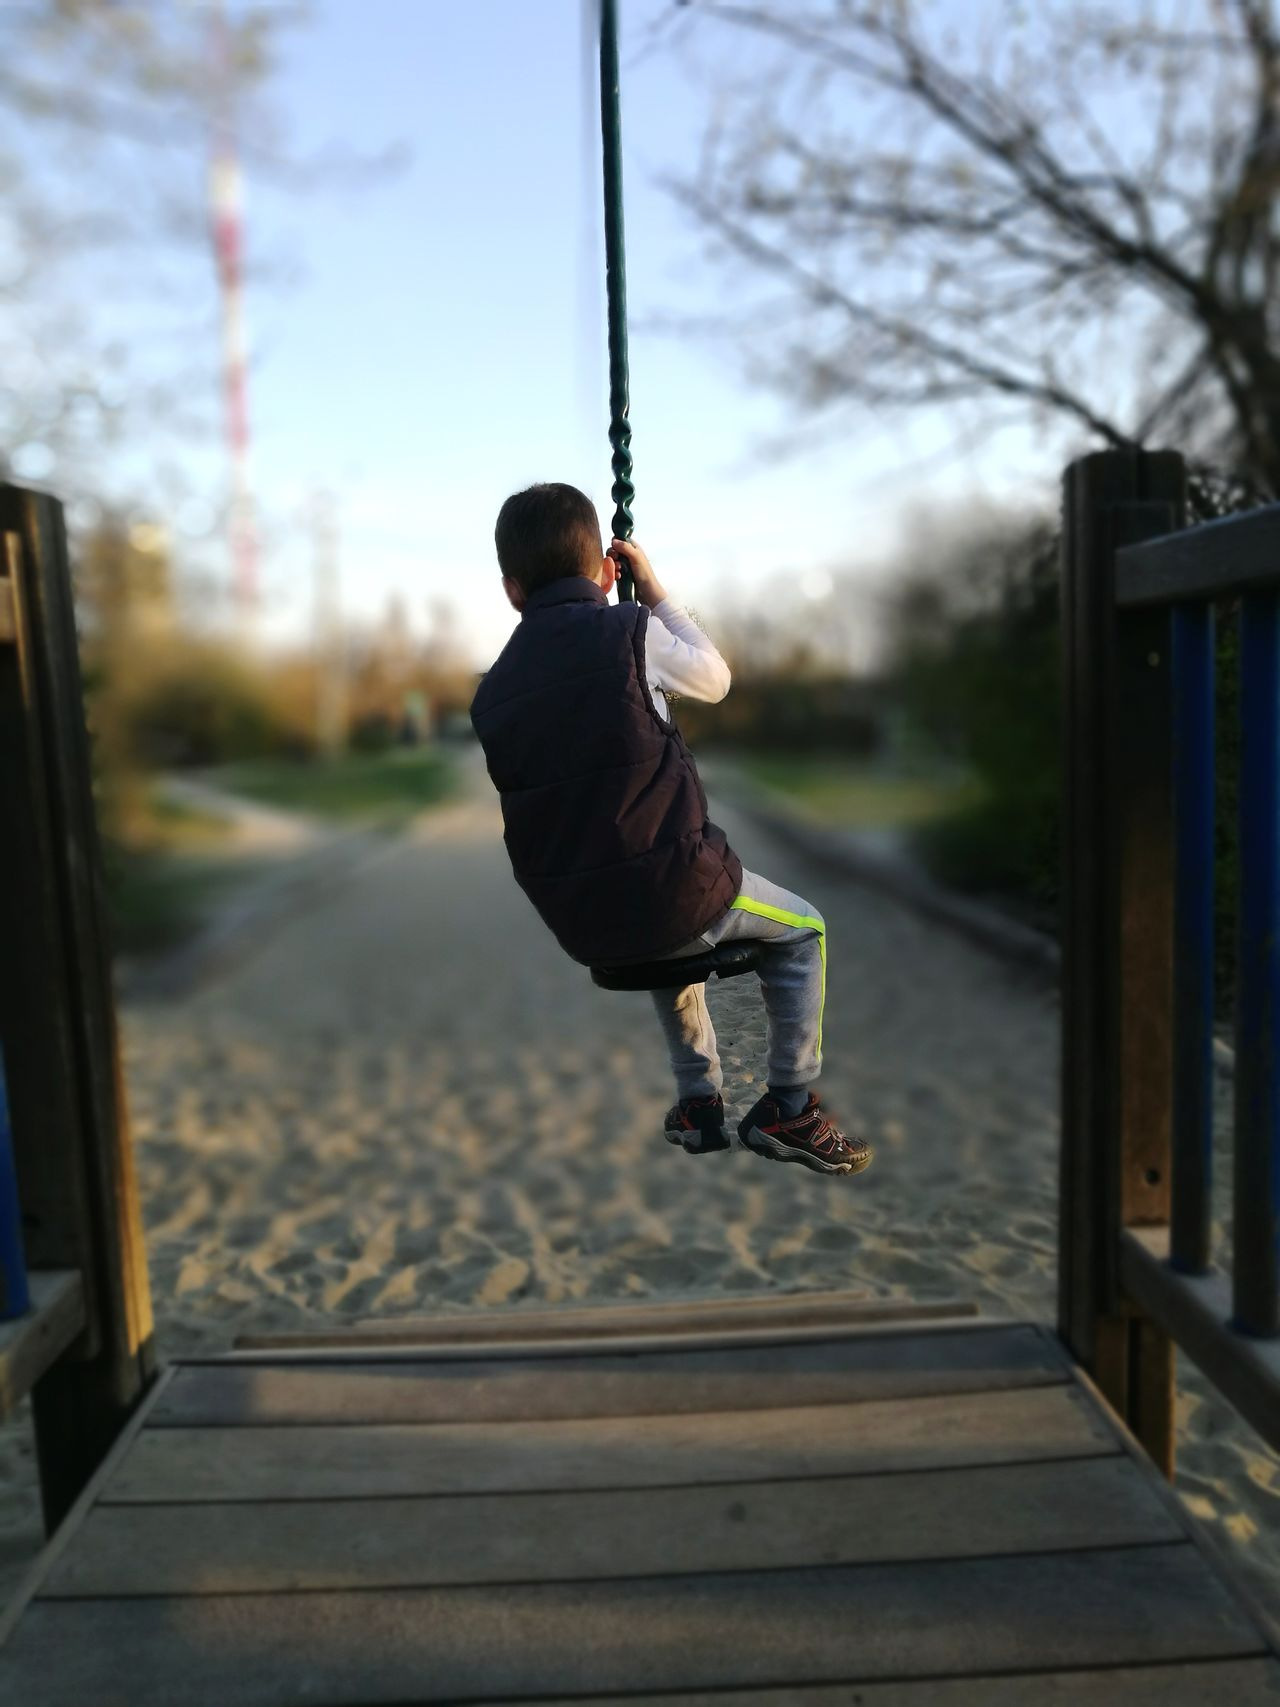 Full Length One Person Childhood Swing Motion People Fun Child Sky Outdoors Gripping Playground Jumping Sport Day Human Body Part Childhood Memories EyeEmNewHere The Great Outdoors - 2017 EyeEm Awards